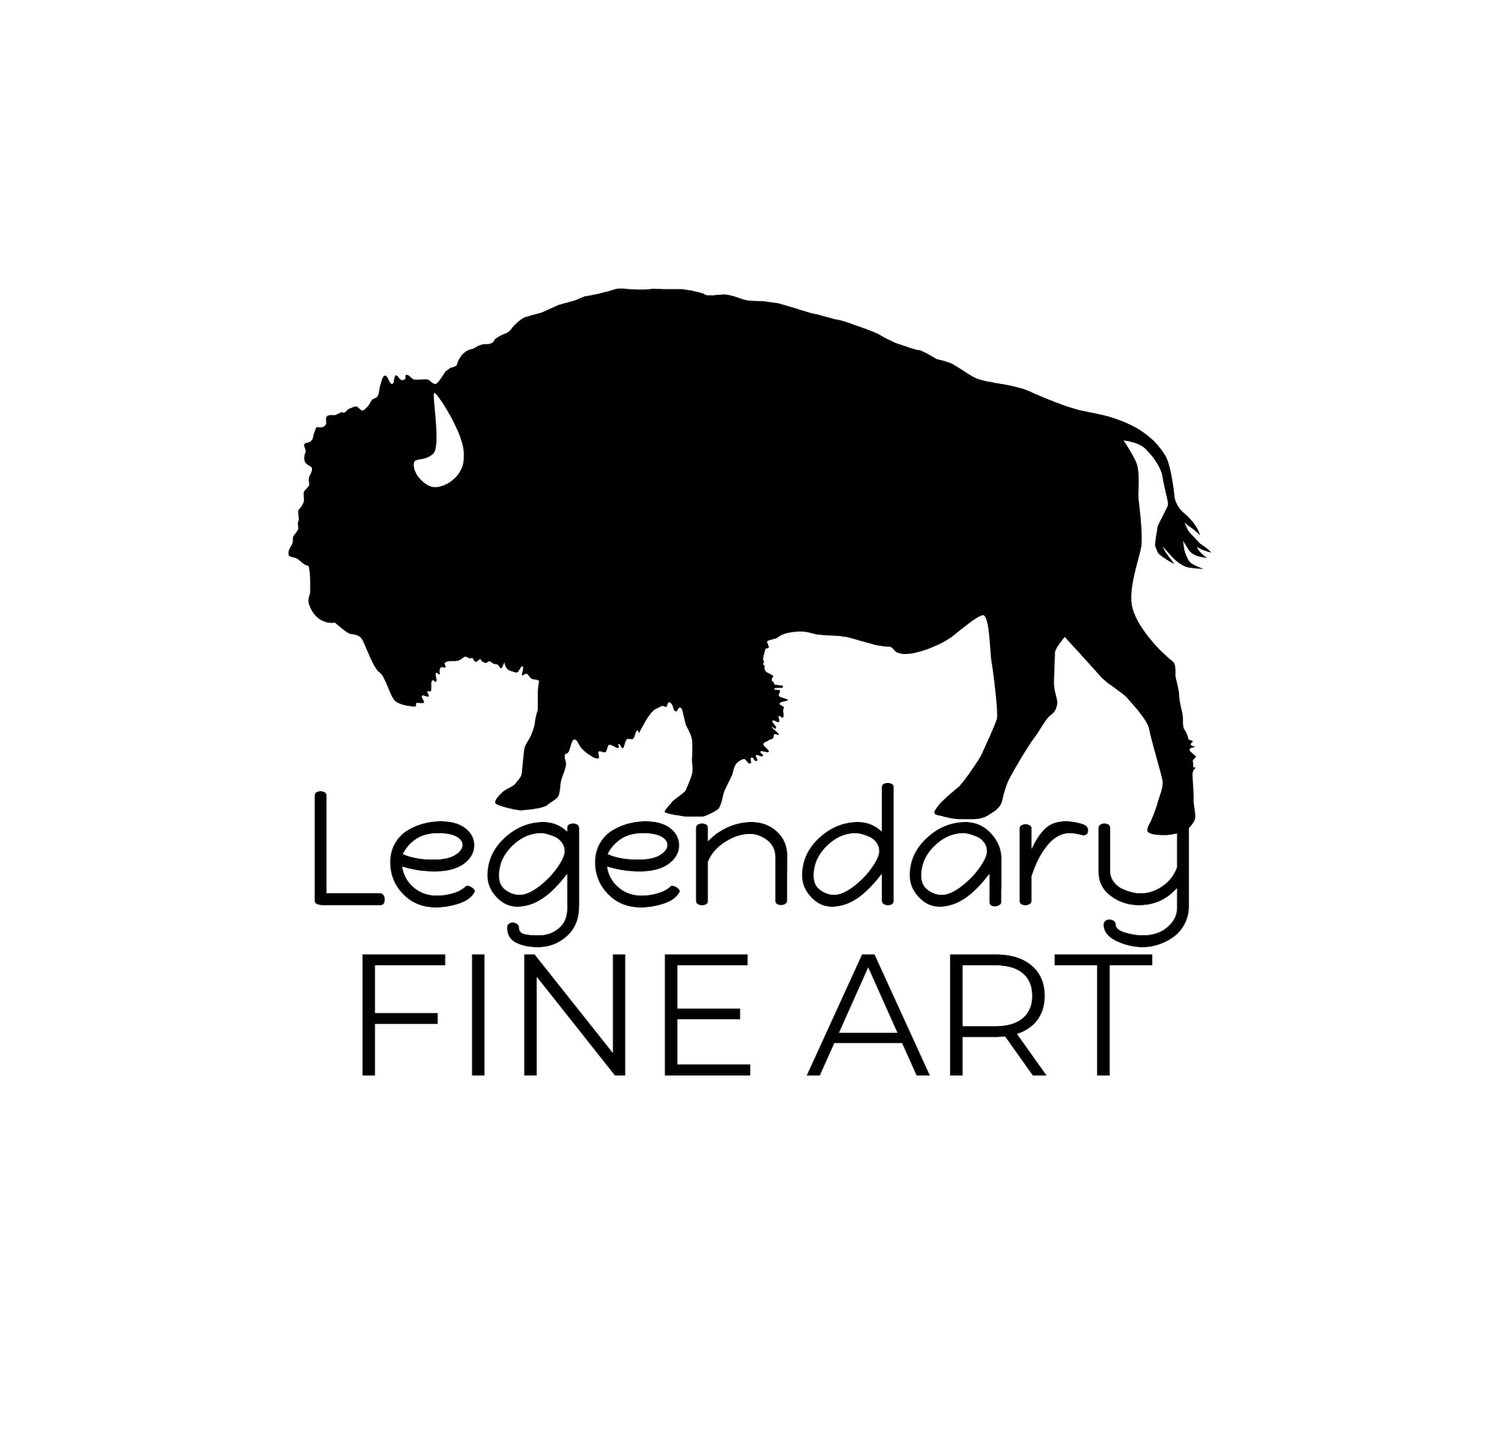 Word Art — Legendary Fine Art